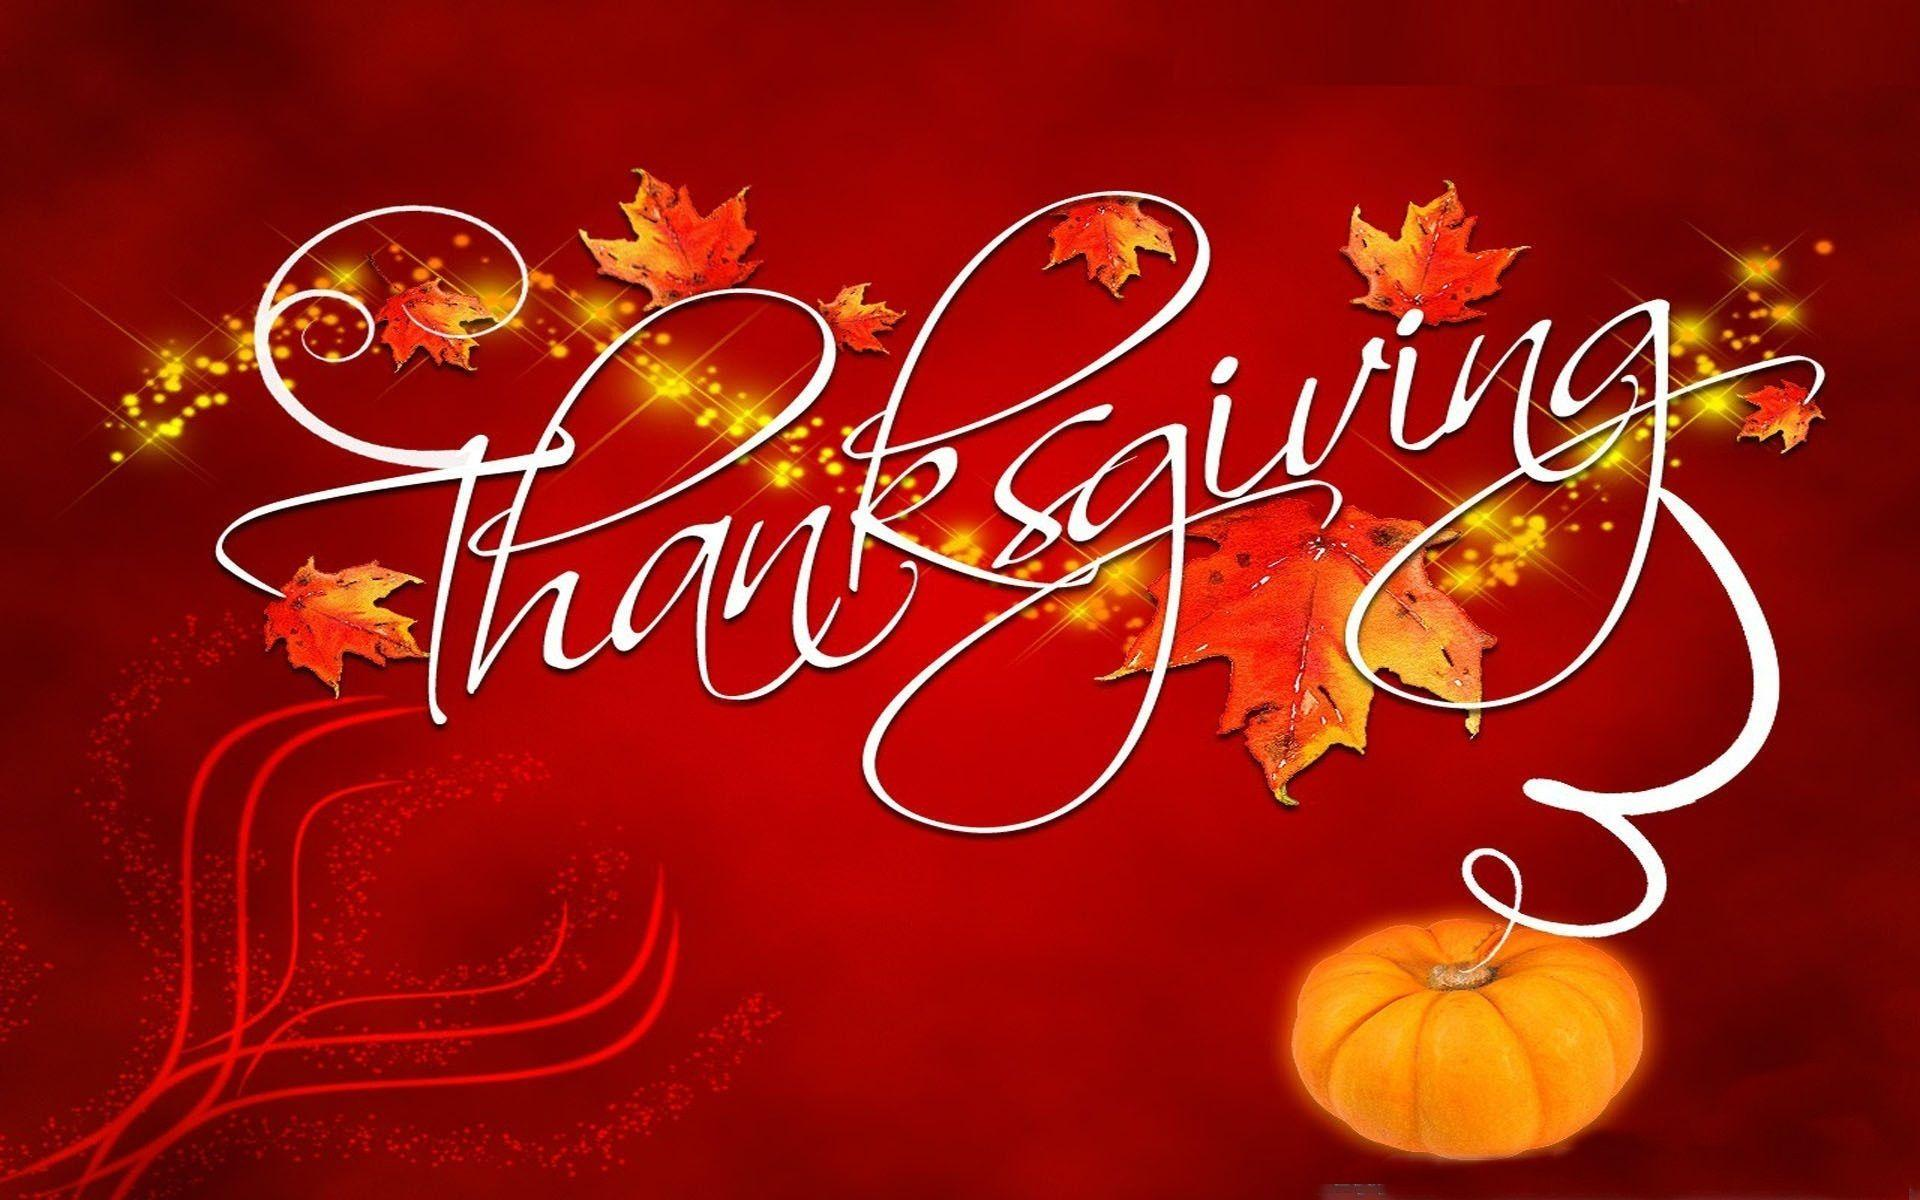 Thanksgiving 2016 wallpapers wallpaper cave thanksgiving wallpaper hd free download 2016 wallpapers voltagebd Gallery